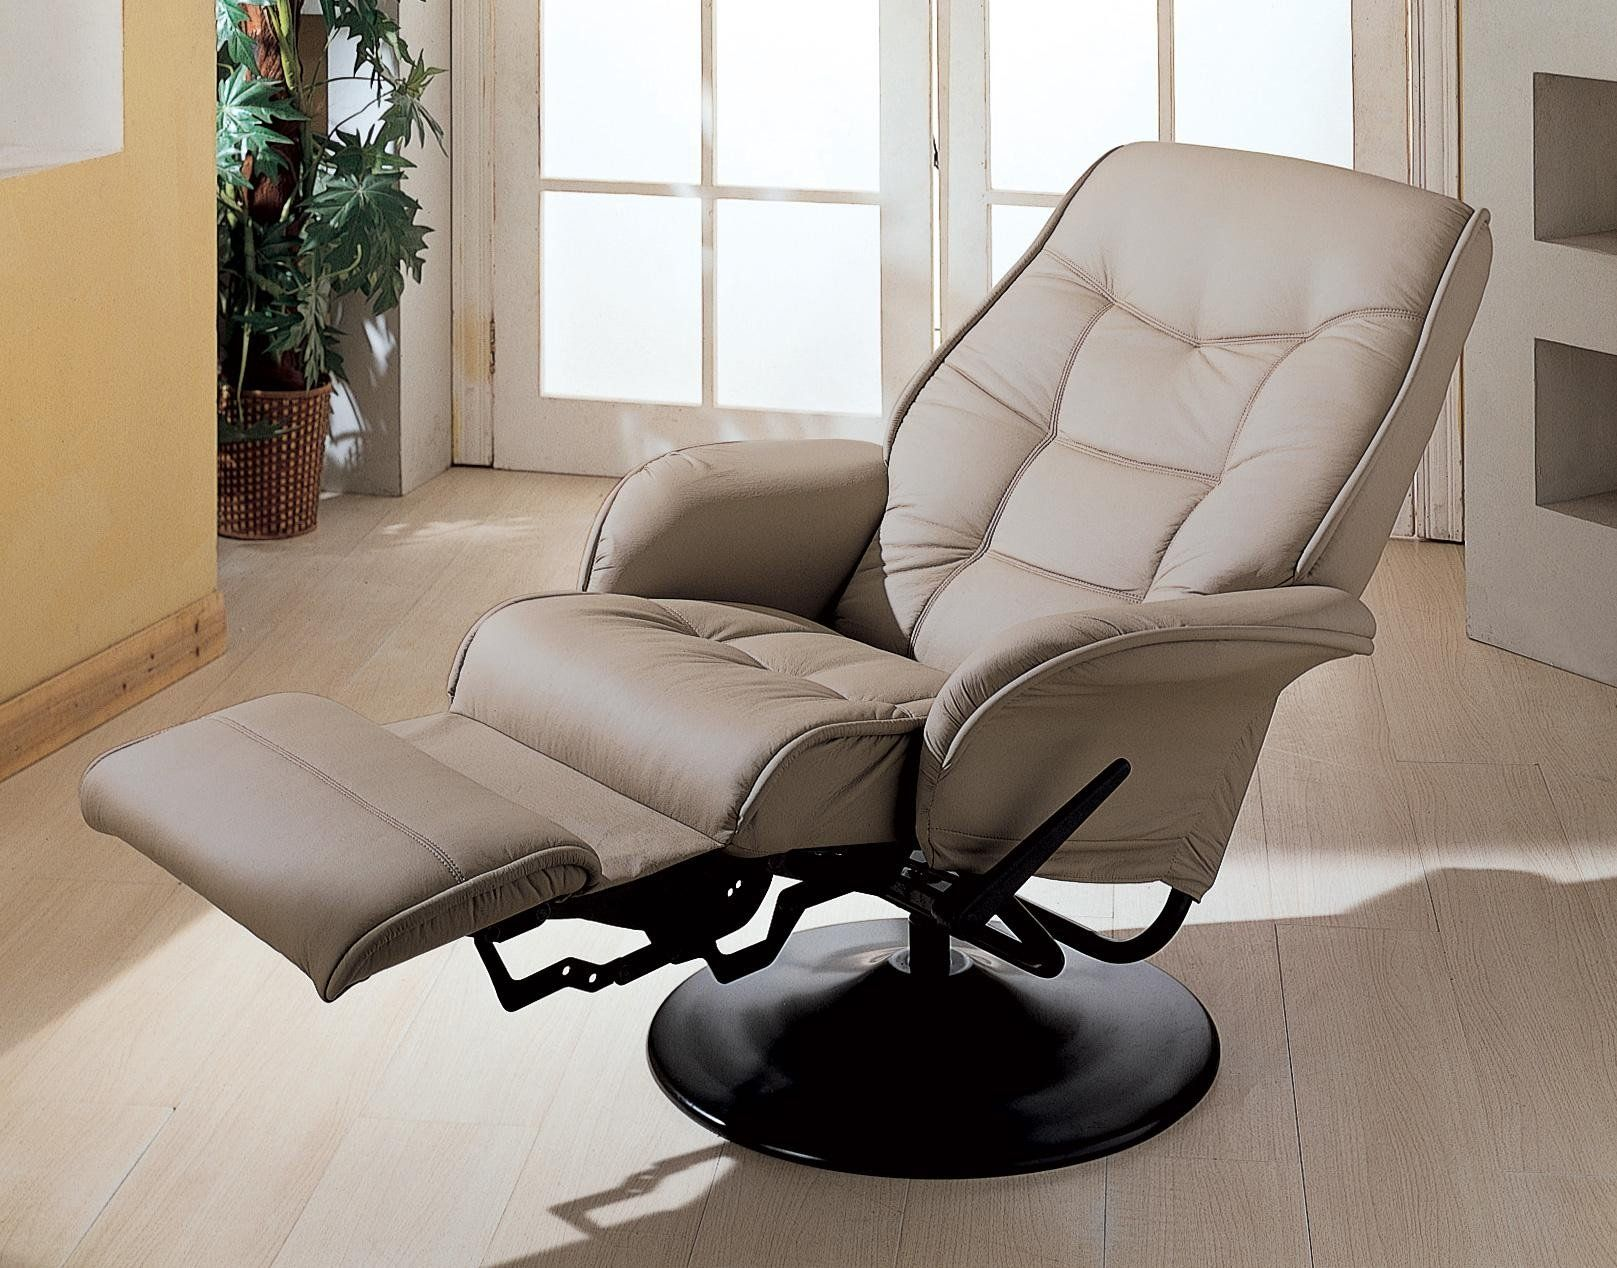 Coaster 7502 Beige Recliner Chair Swivel Recliner Chairs Modern Recliner Contemporary Recliners